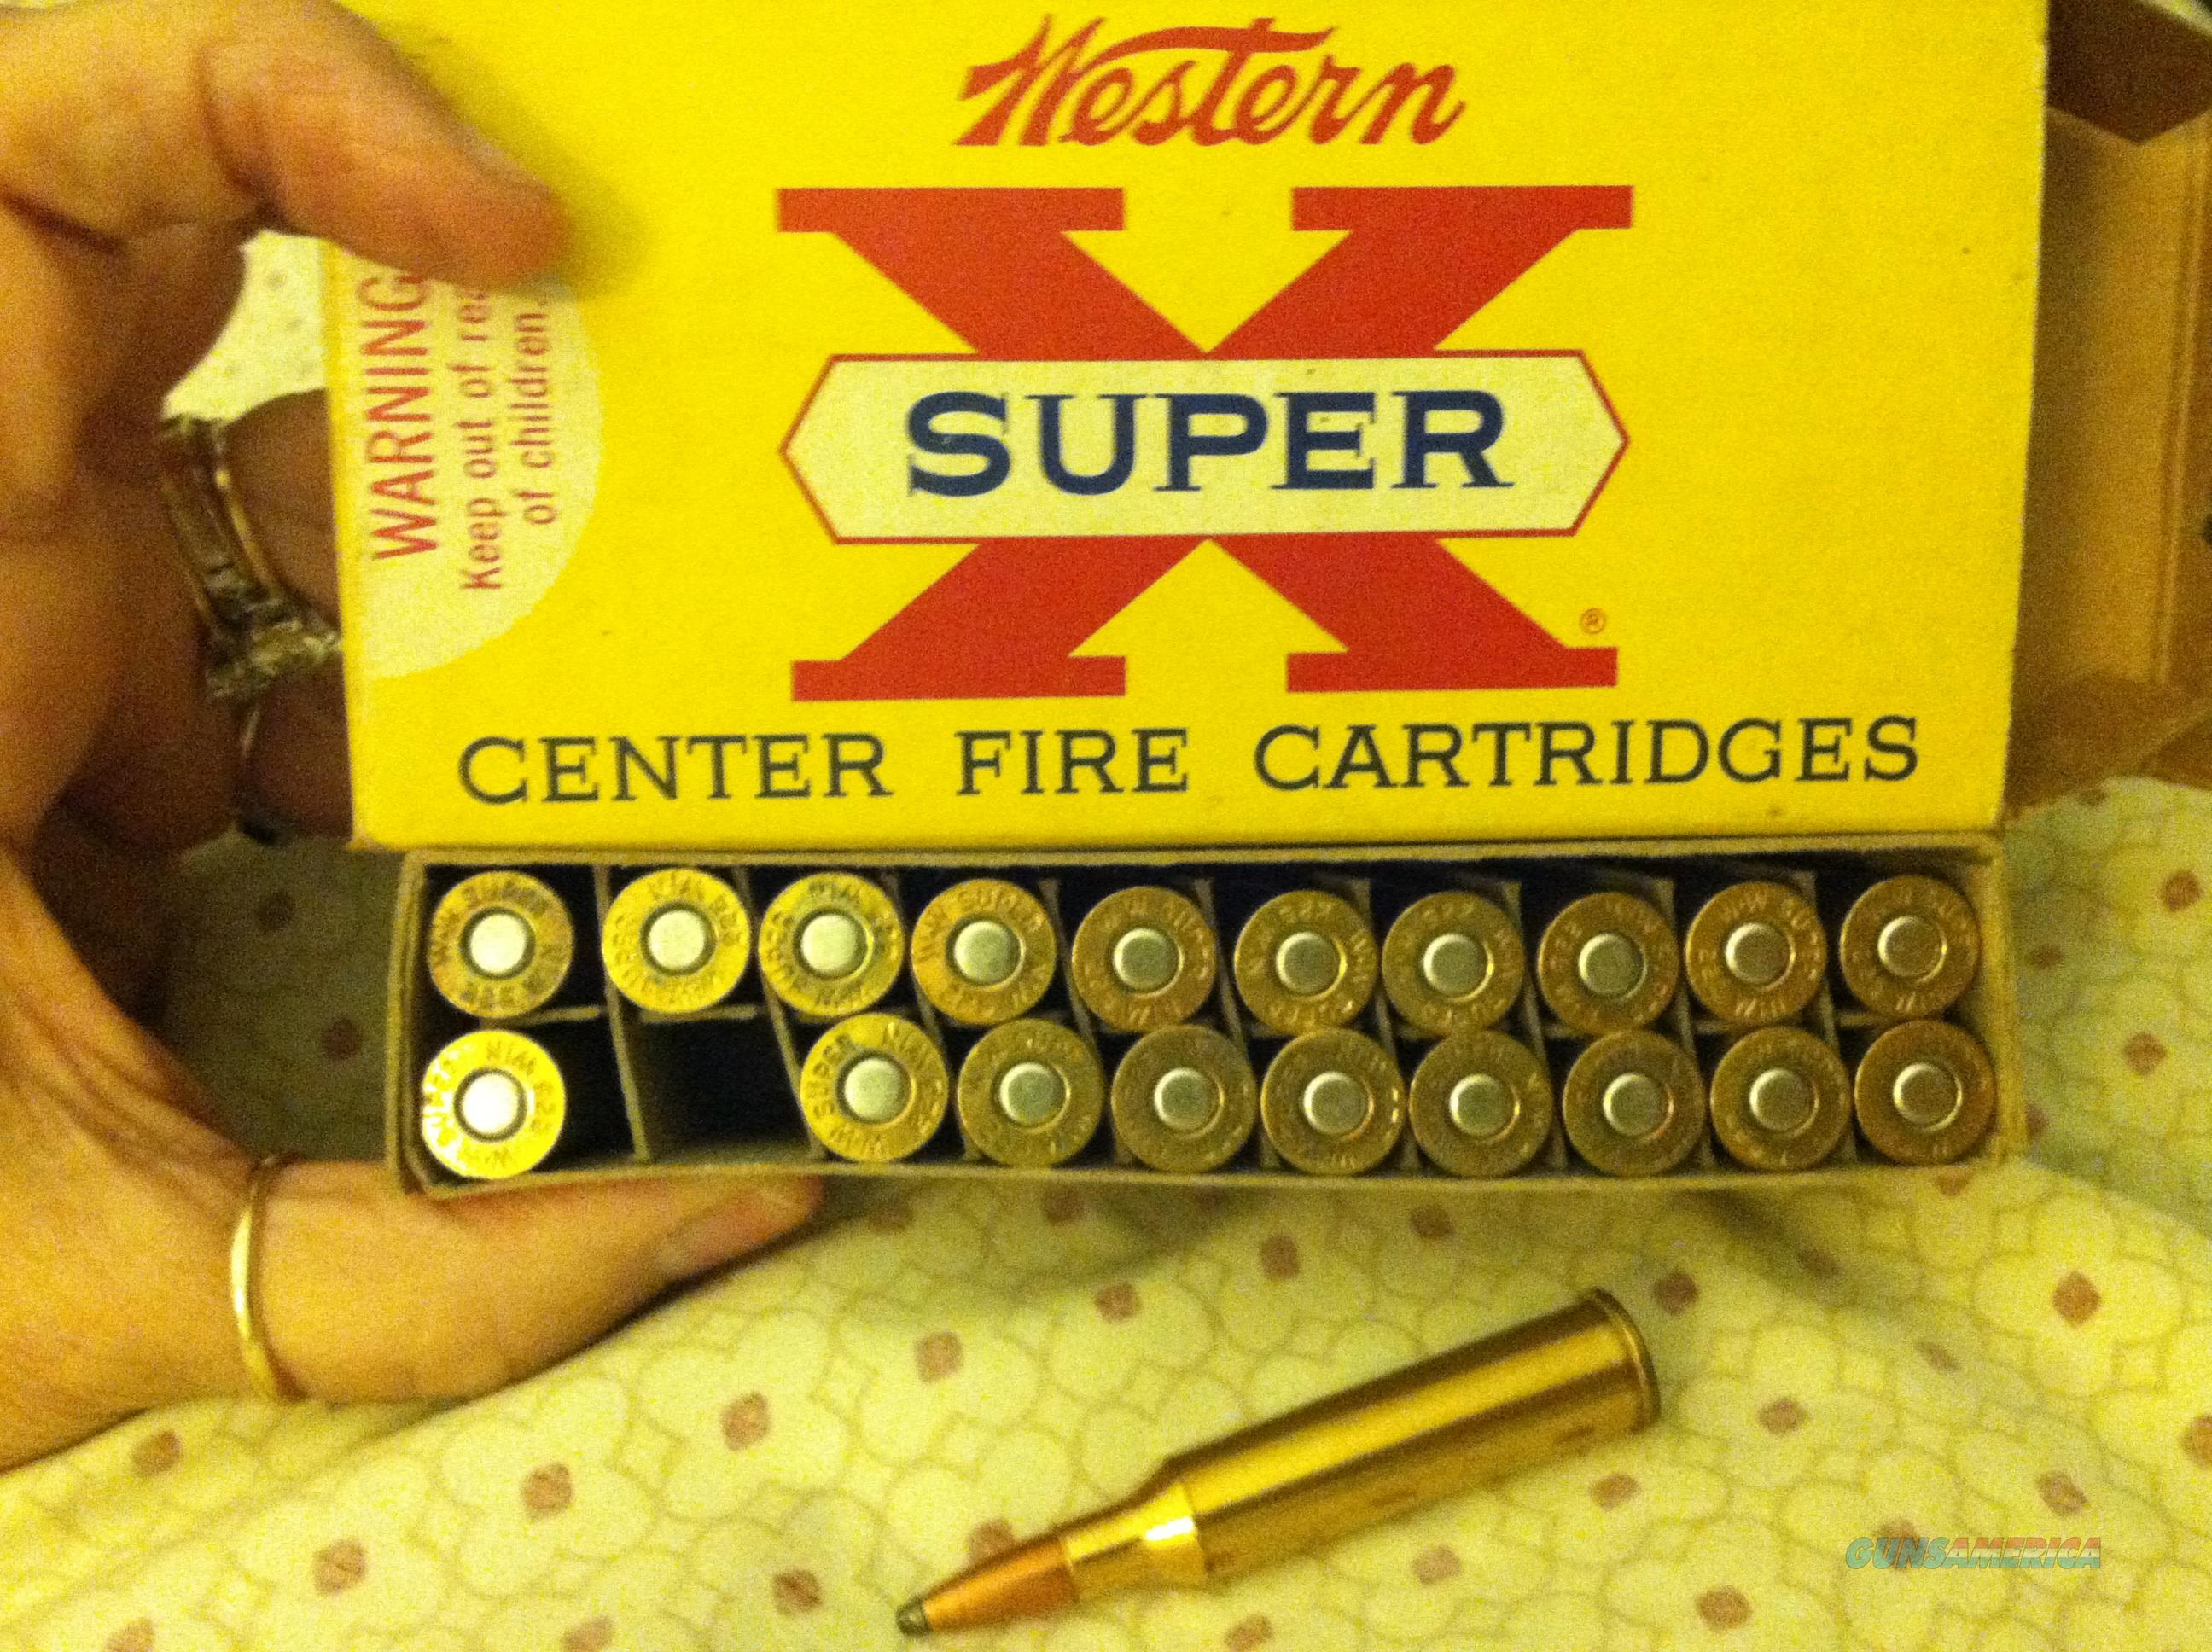 WESTERN 225 WINCHESTER 20 CARTRIDGES 55 GR. POINTED SOFT POINT SUPER X CENTER FIRE   Non-Guns > Ammunition